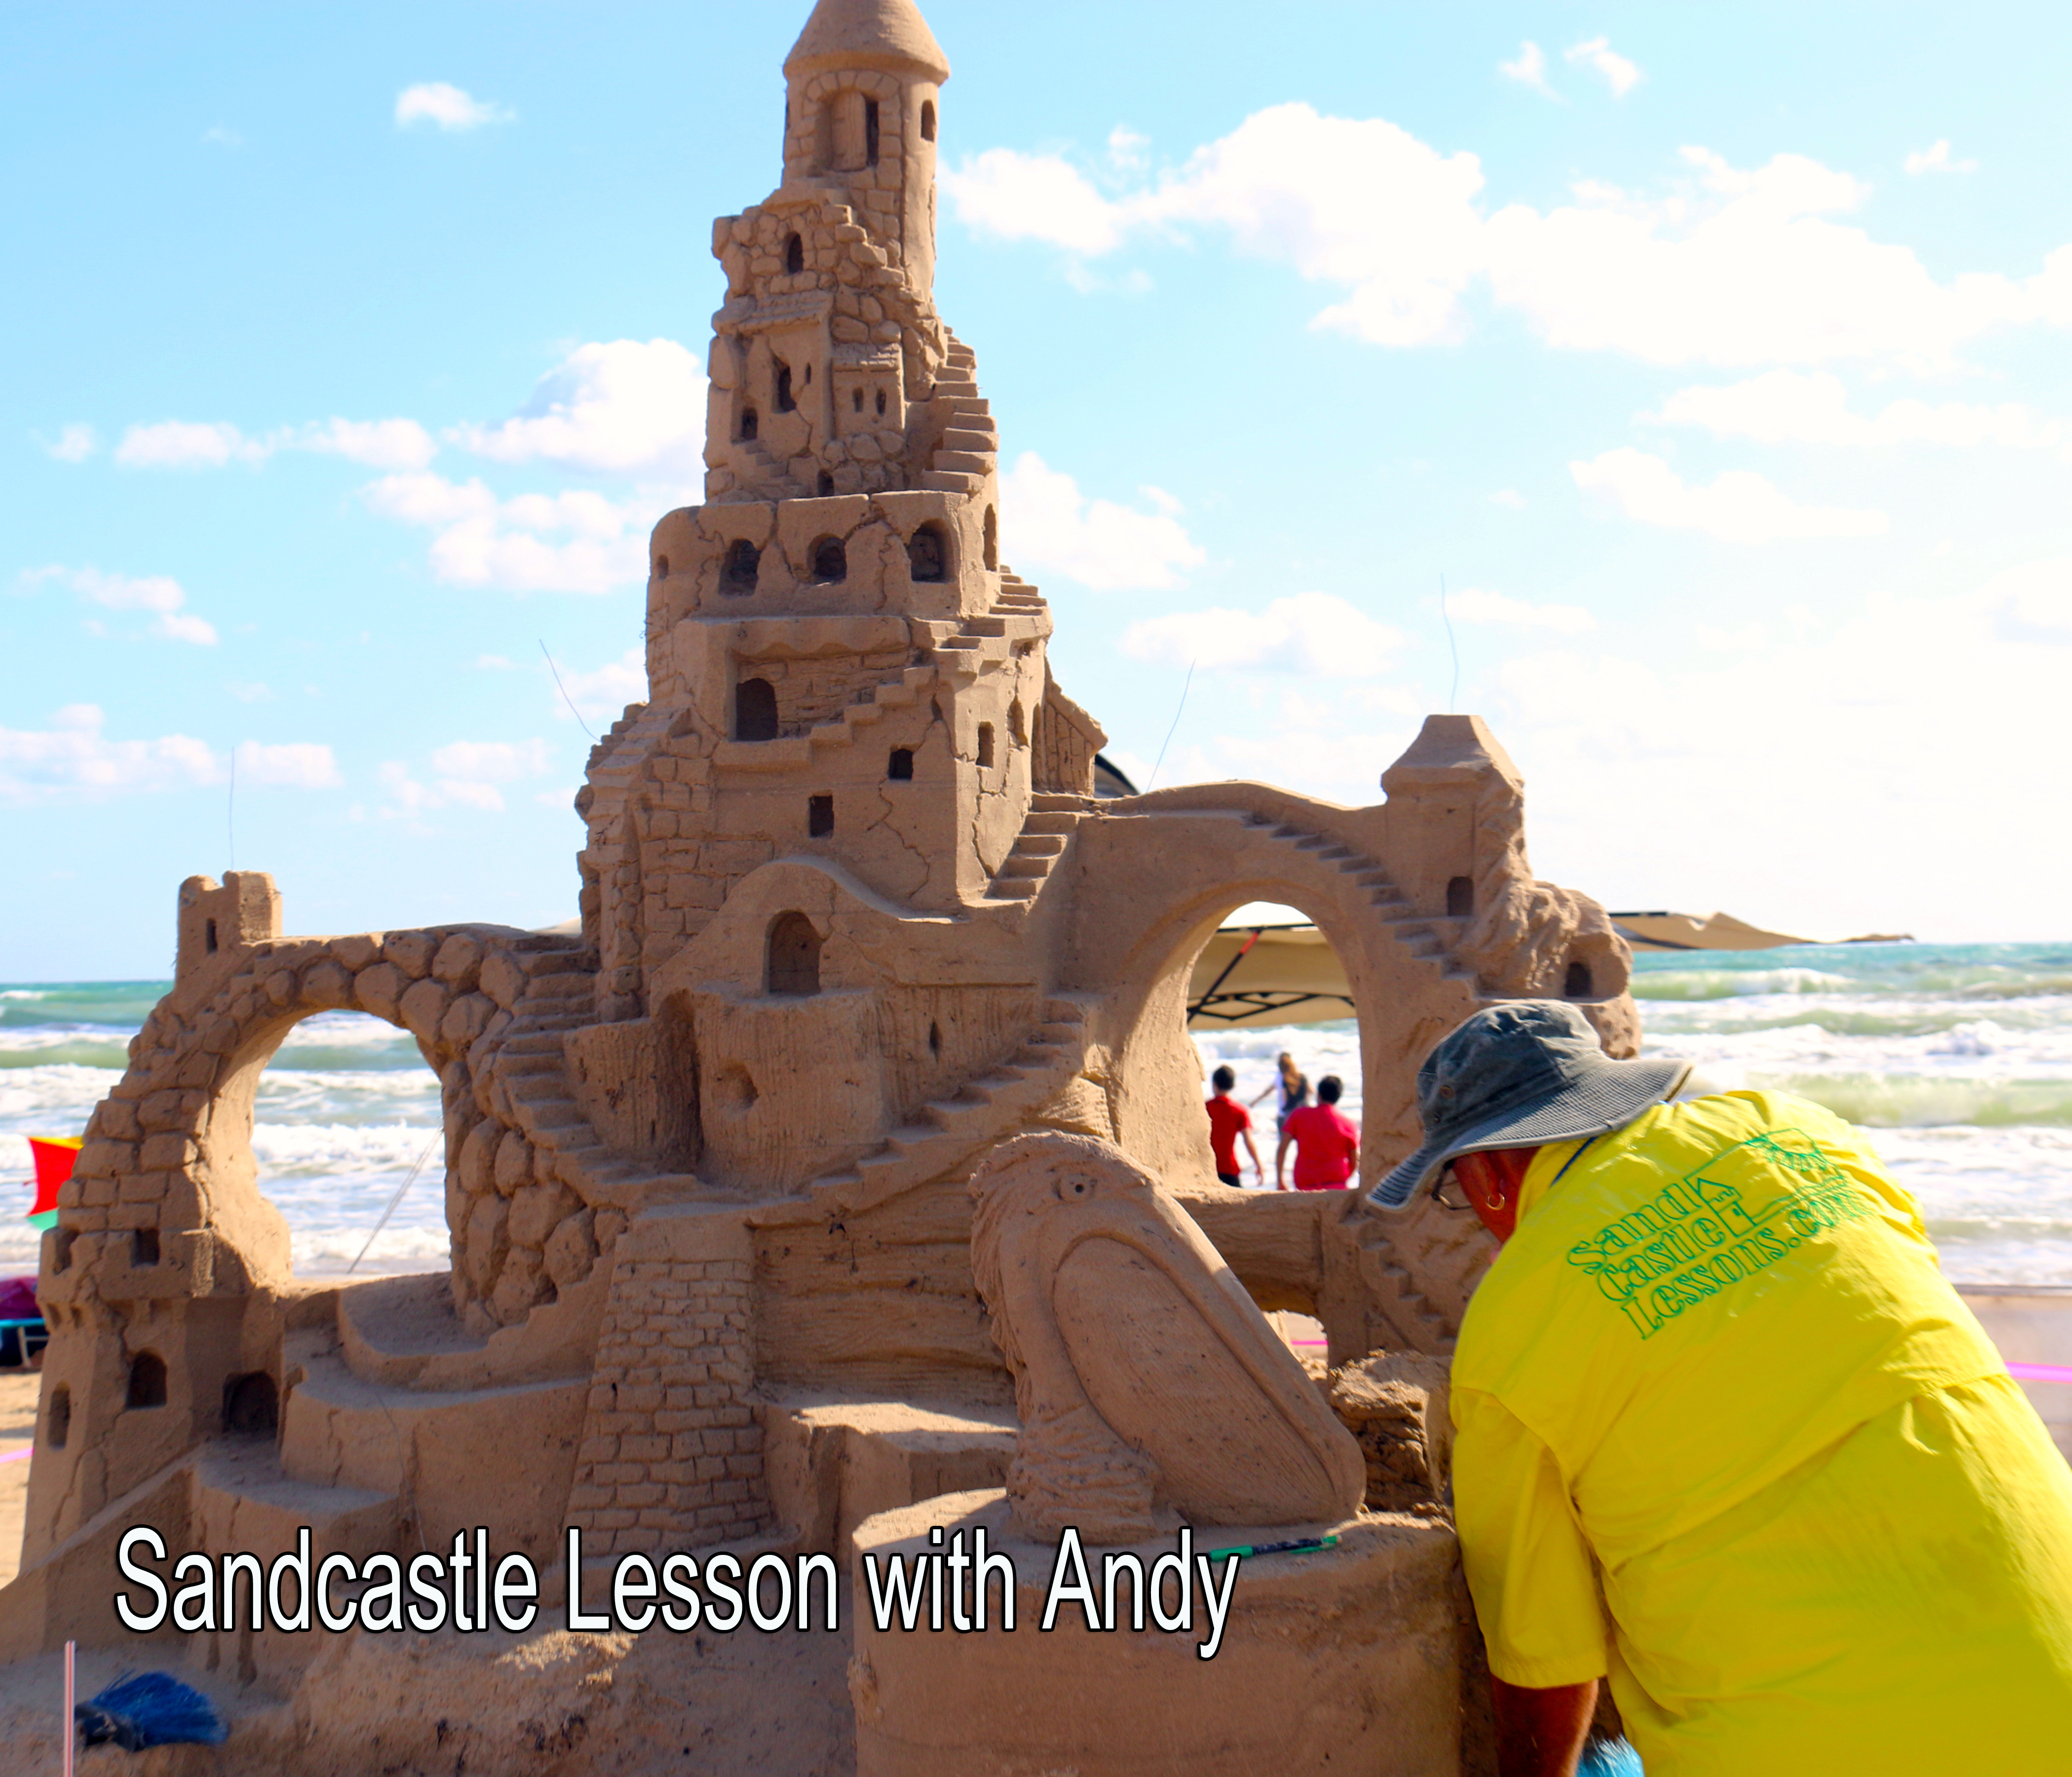 Sandcastle Lesson